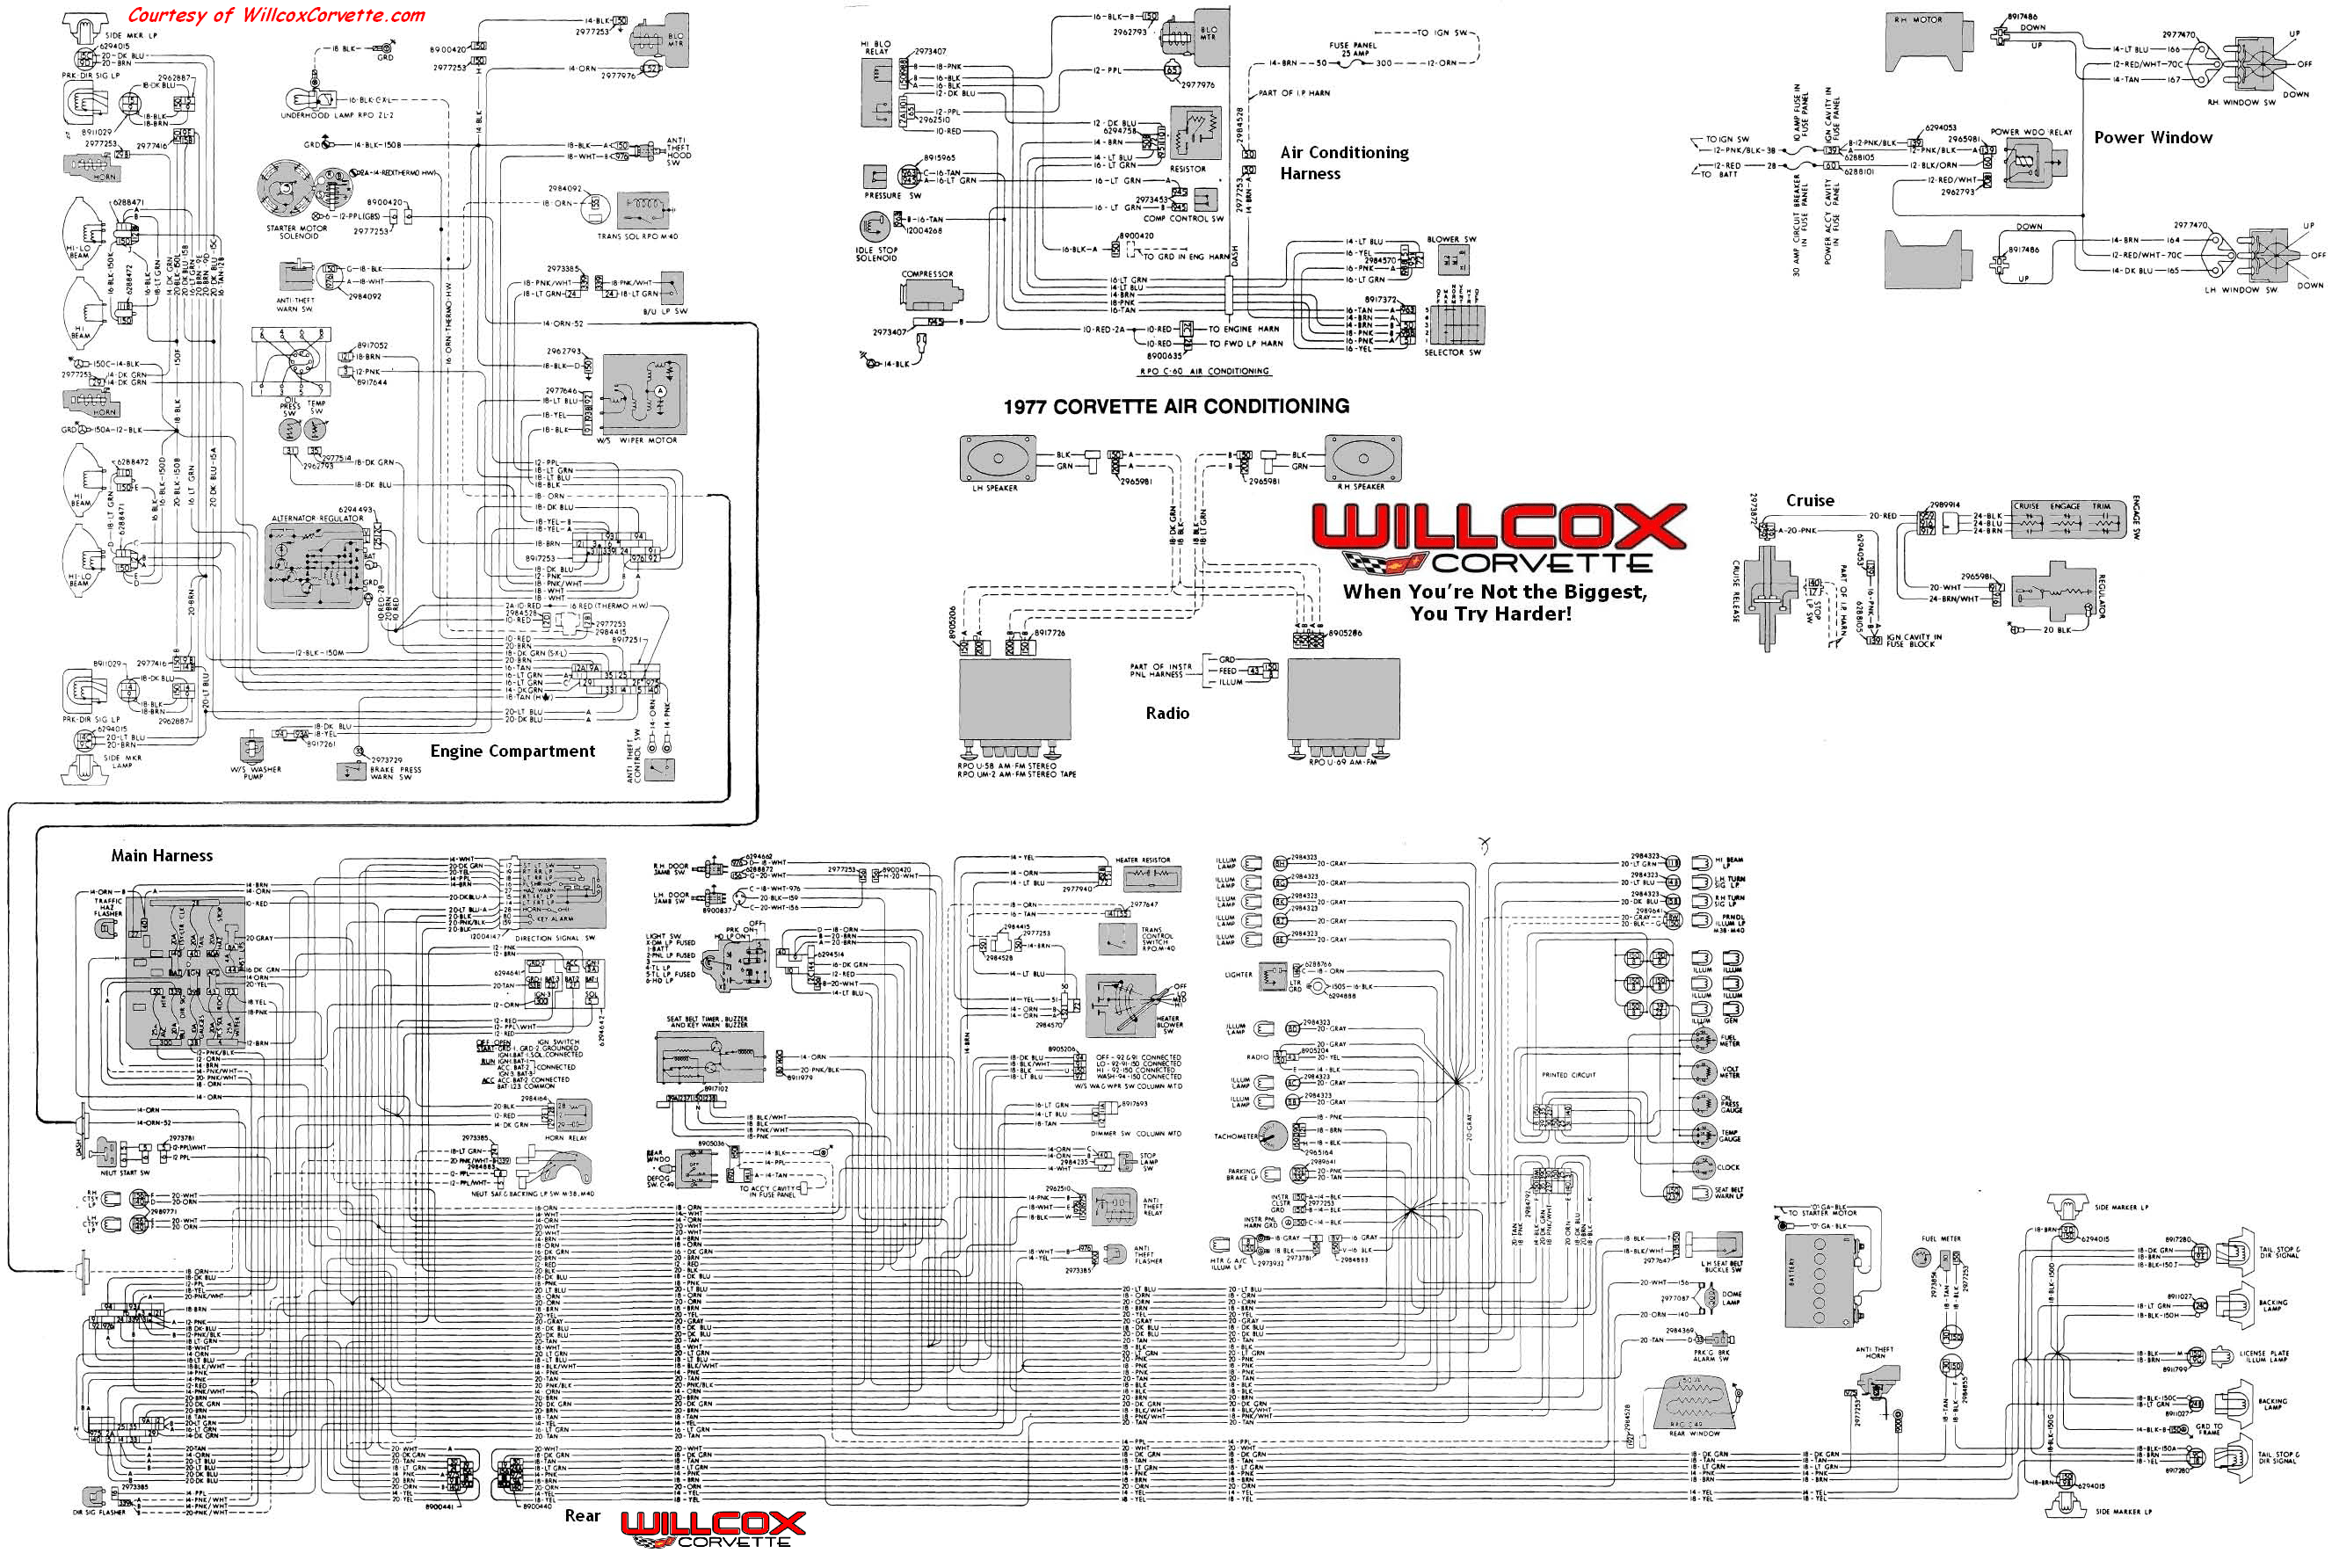 77 corvette wire schematic tracer?resize\\\\\\\\\\\\\=665%2C447 jeep cj wiring harness diagram wiring diagram simonand corvette wiring harness at aneh.co